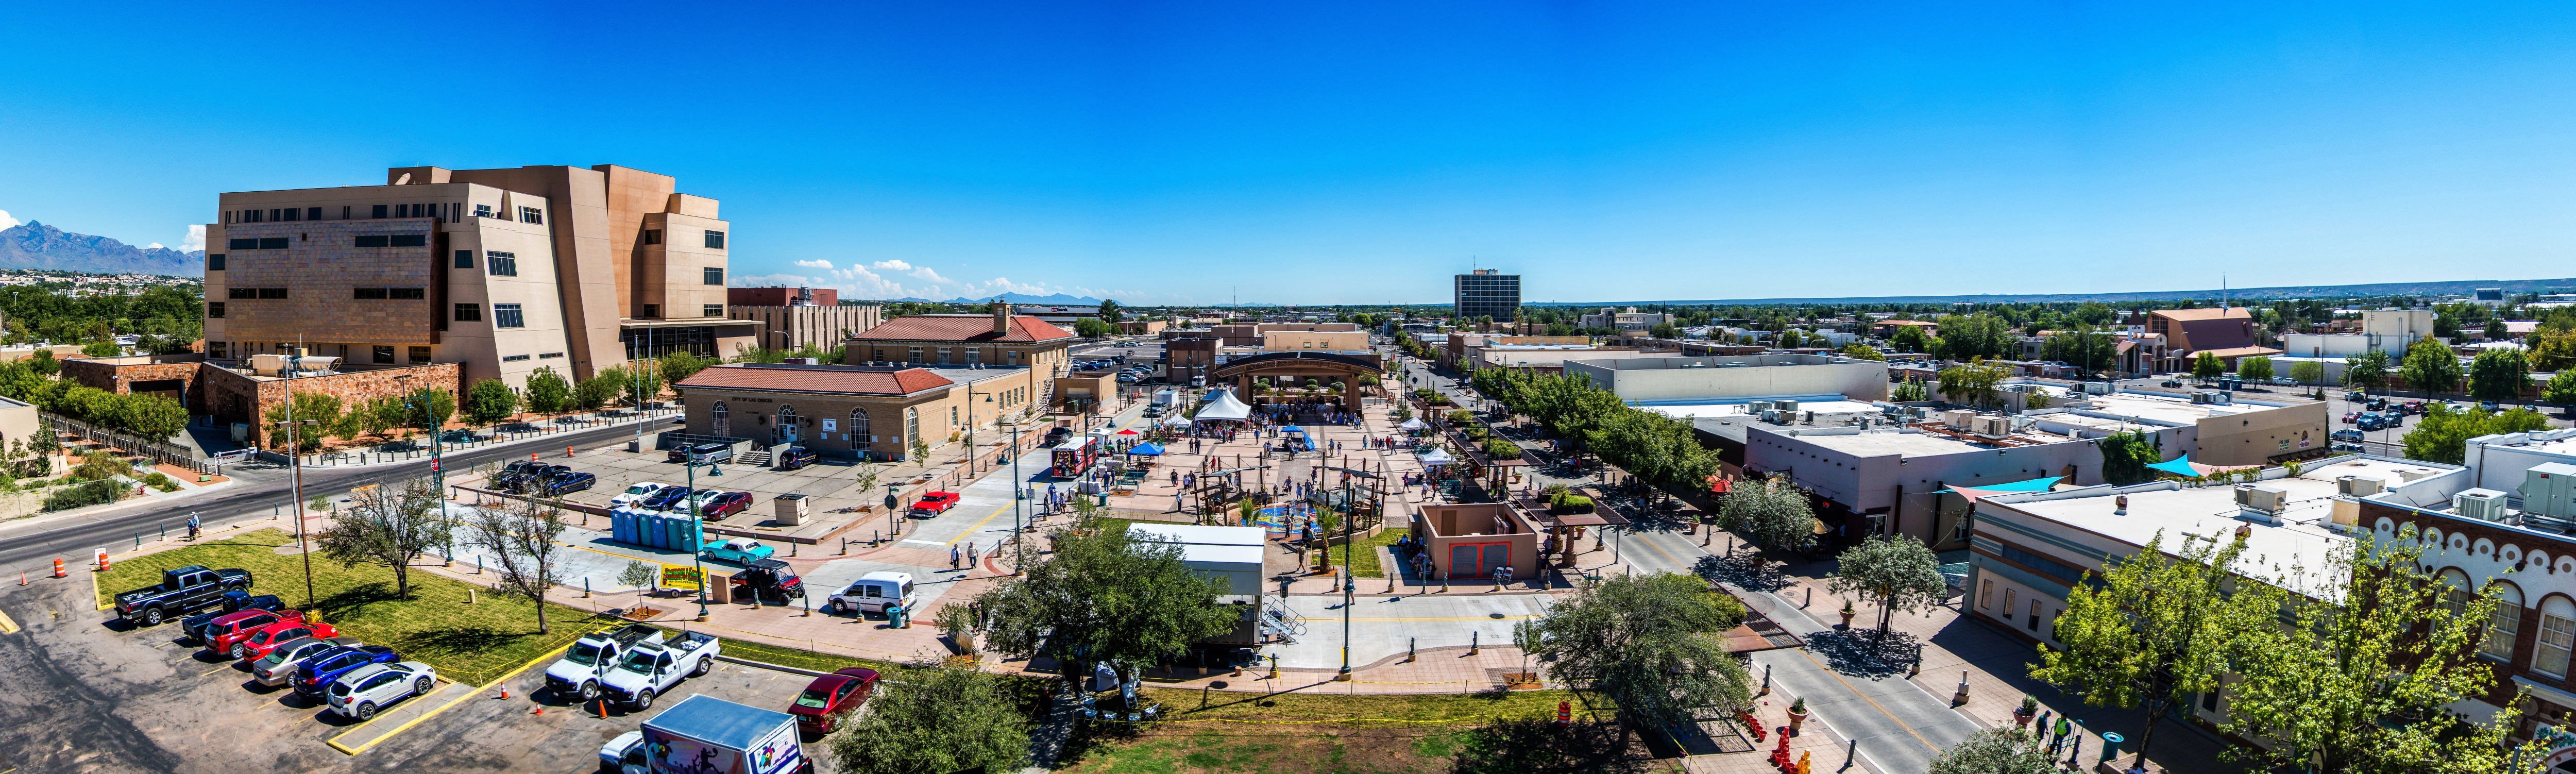 View of Plaza de Las Cruces. Photo courtesy of Victor Gibbs.